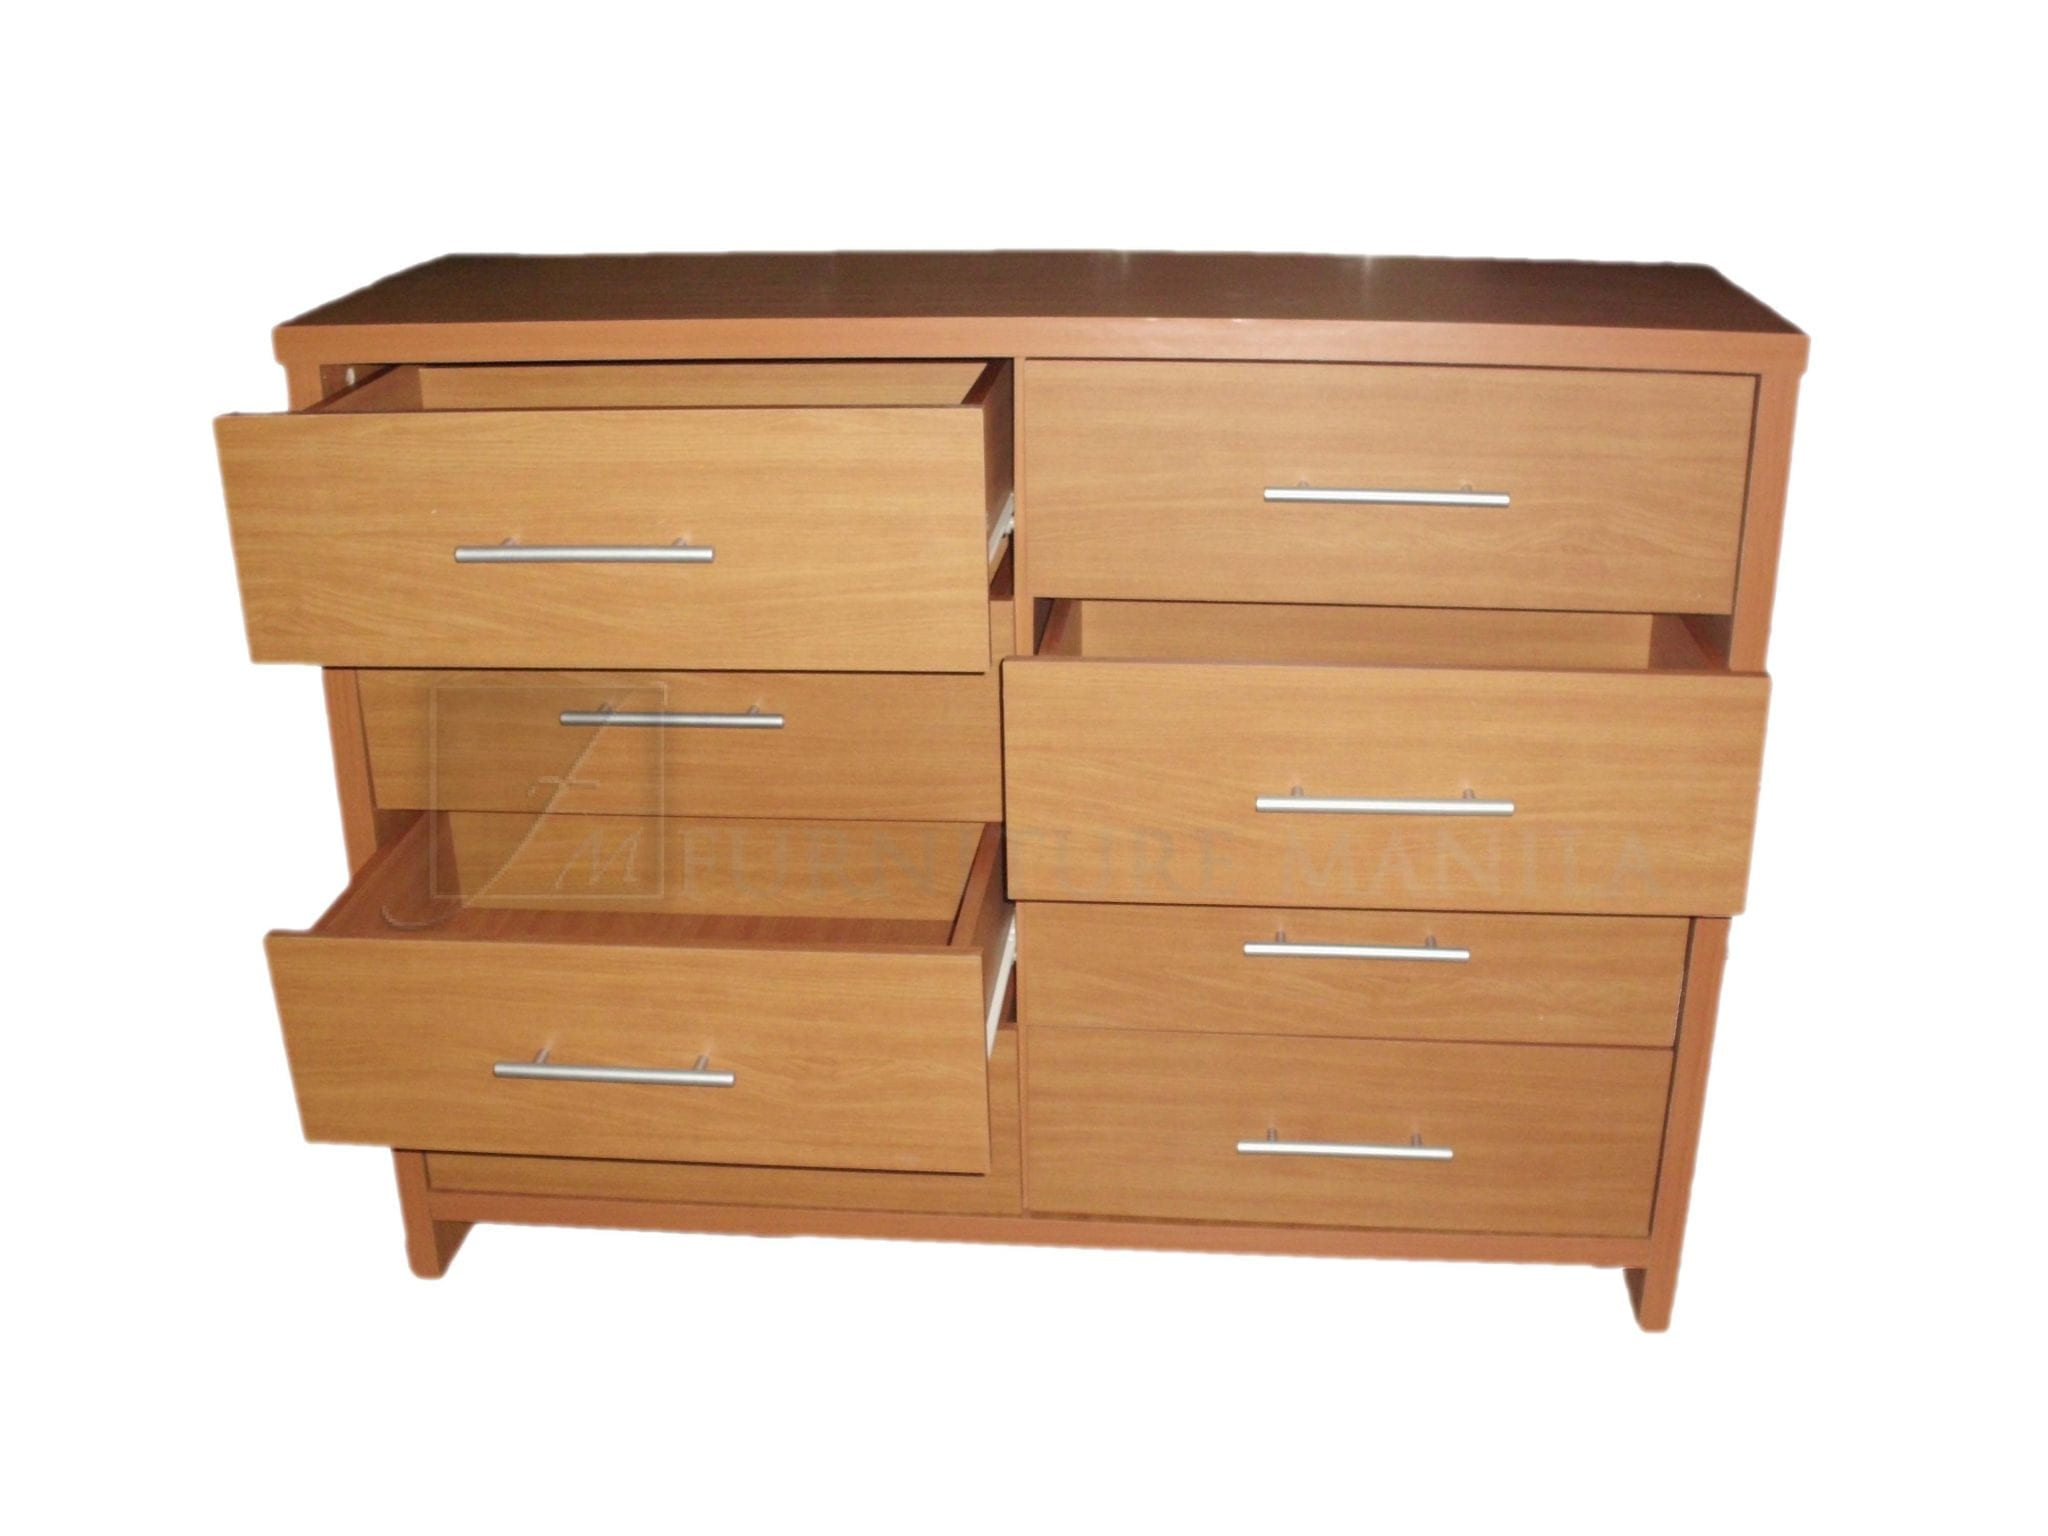 T8d Chest Of Drawers Home Office Furniture Philippines: home office furniture philippines